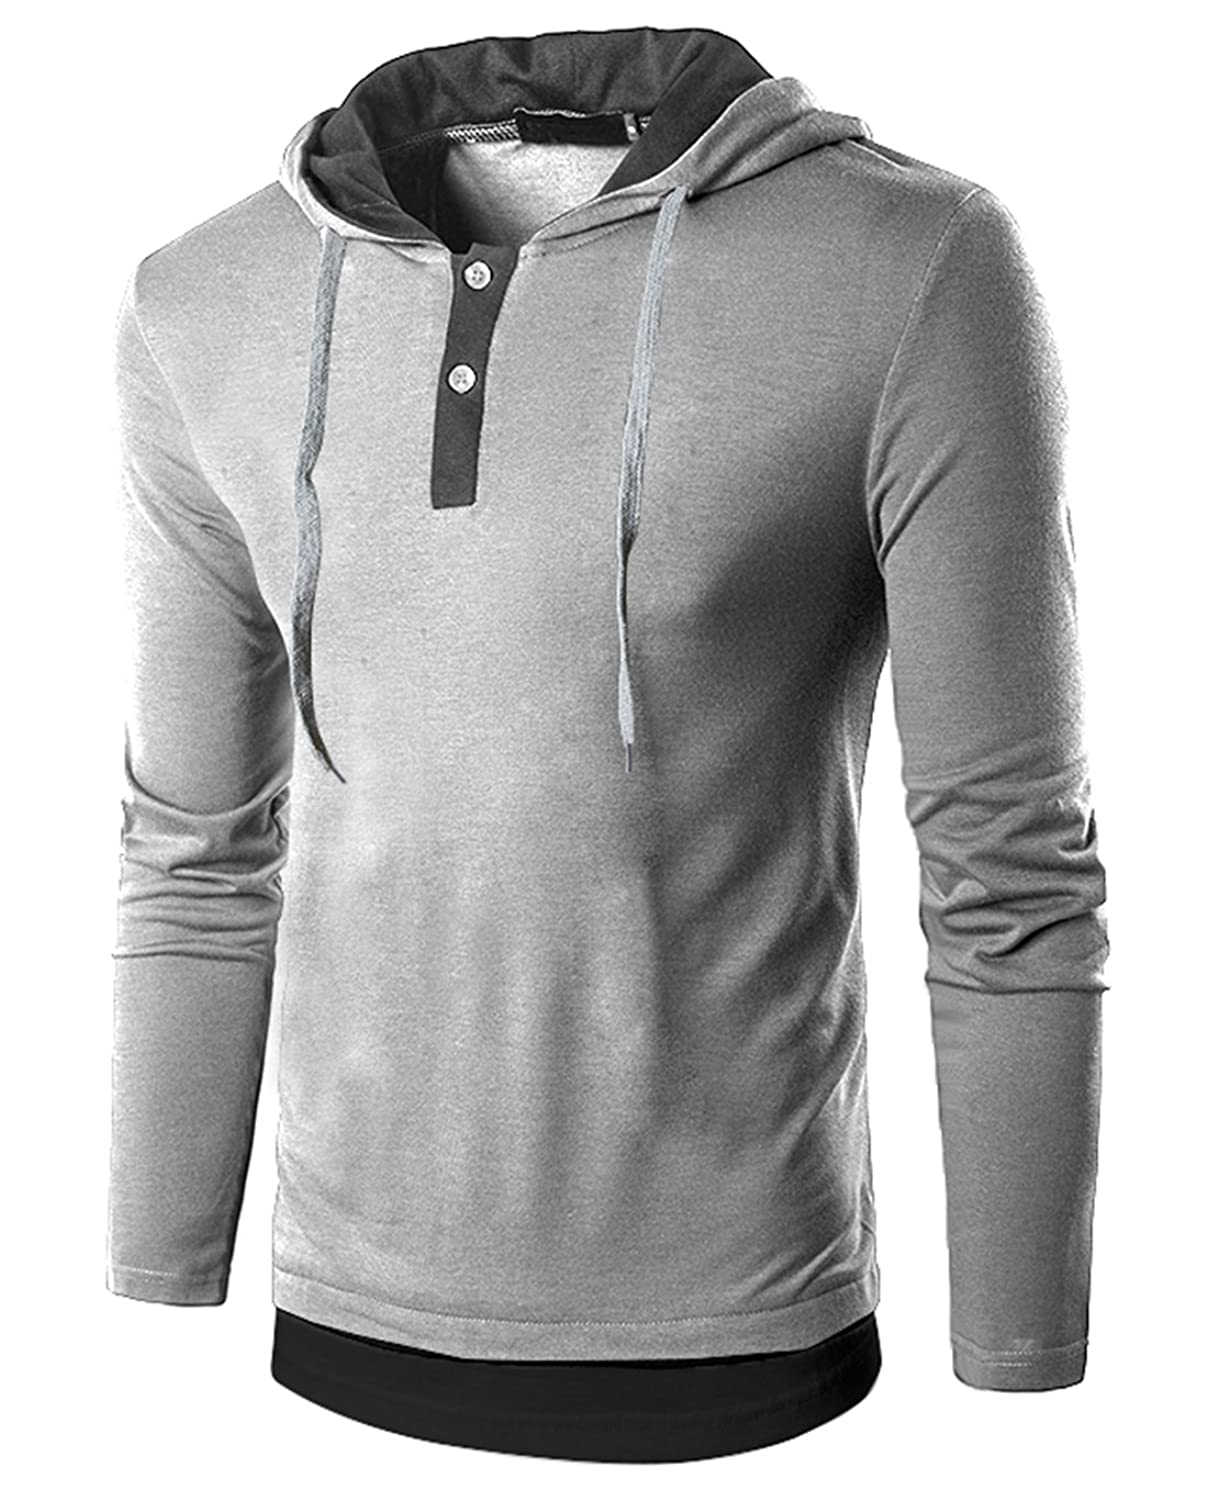 SIR7 Men's Casual Long Sleeve Hoodie T Shirt Lightweight Hipster Hip Hop Hooded Shirt